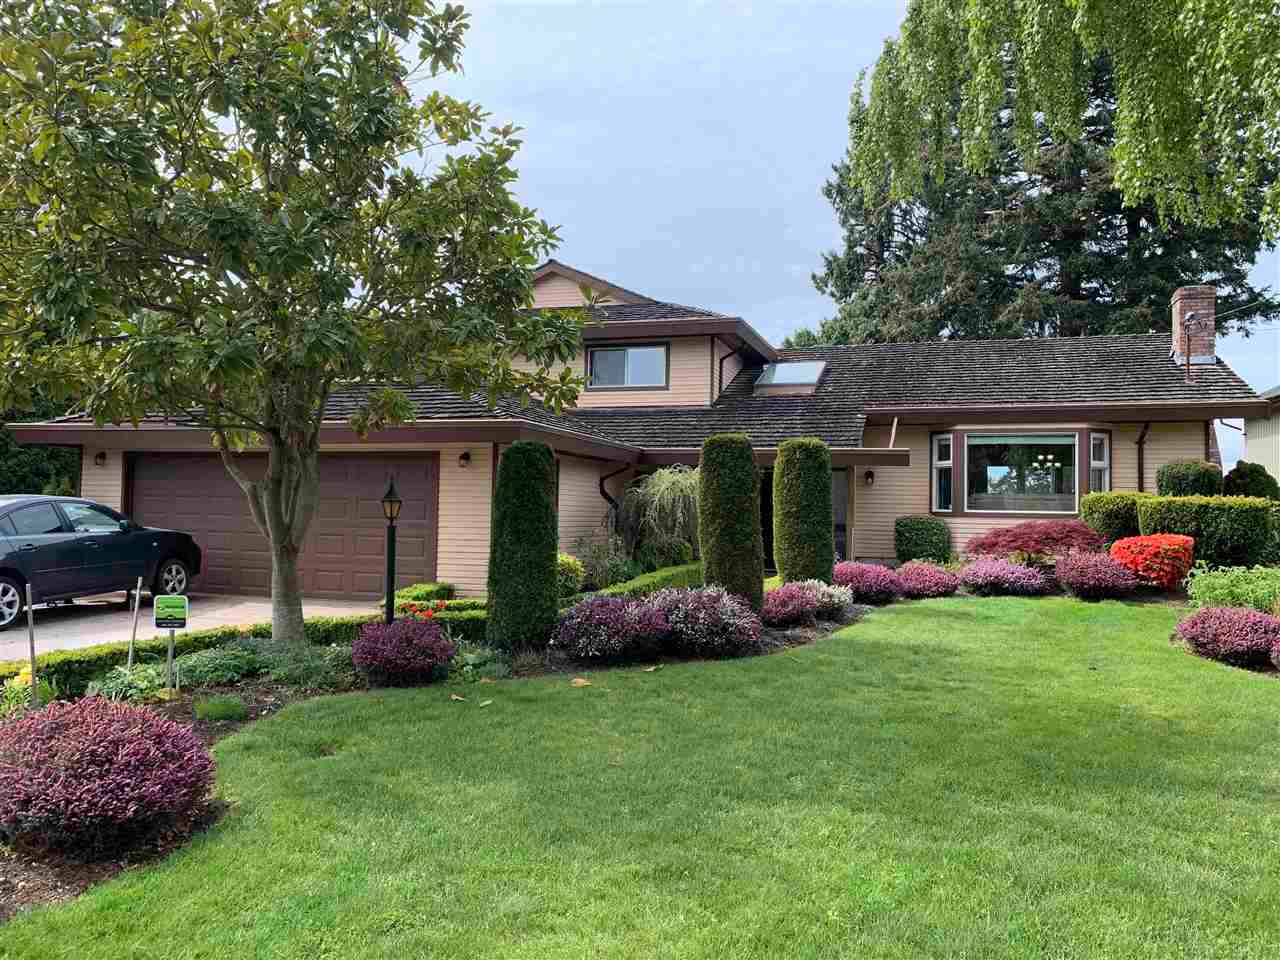 Main Photo: 5243 UPLAND Drive in Delta: Cliff Drive House for sale (Tsawwassen)  : MLS®# R2576077